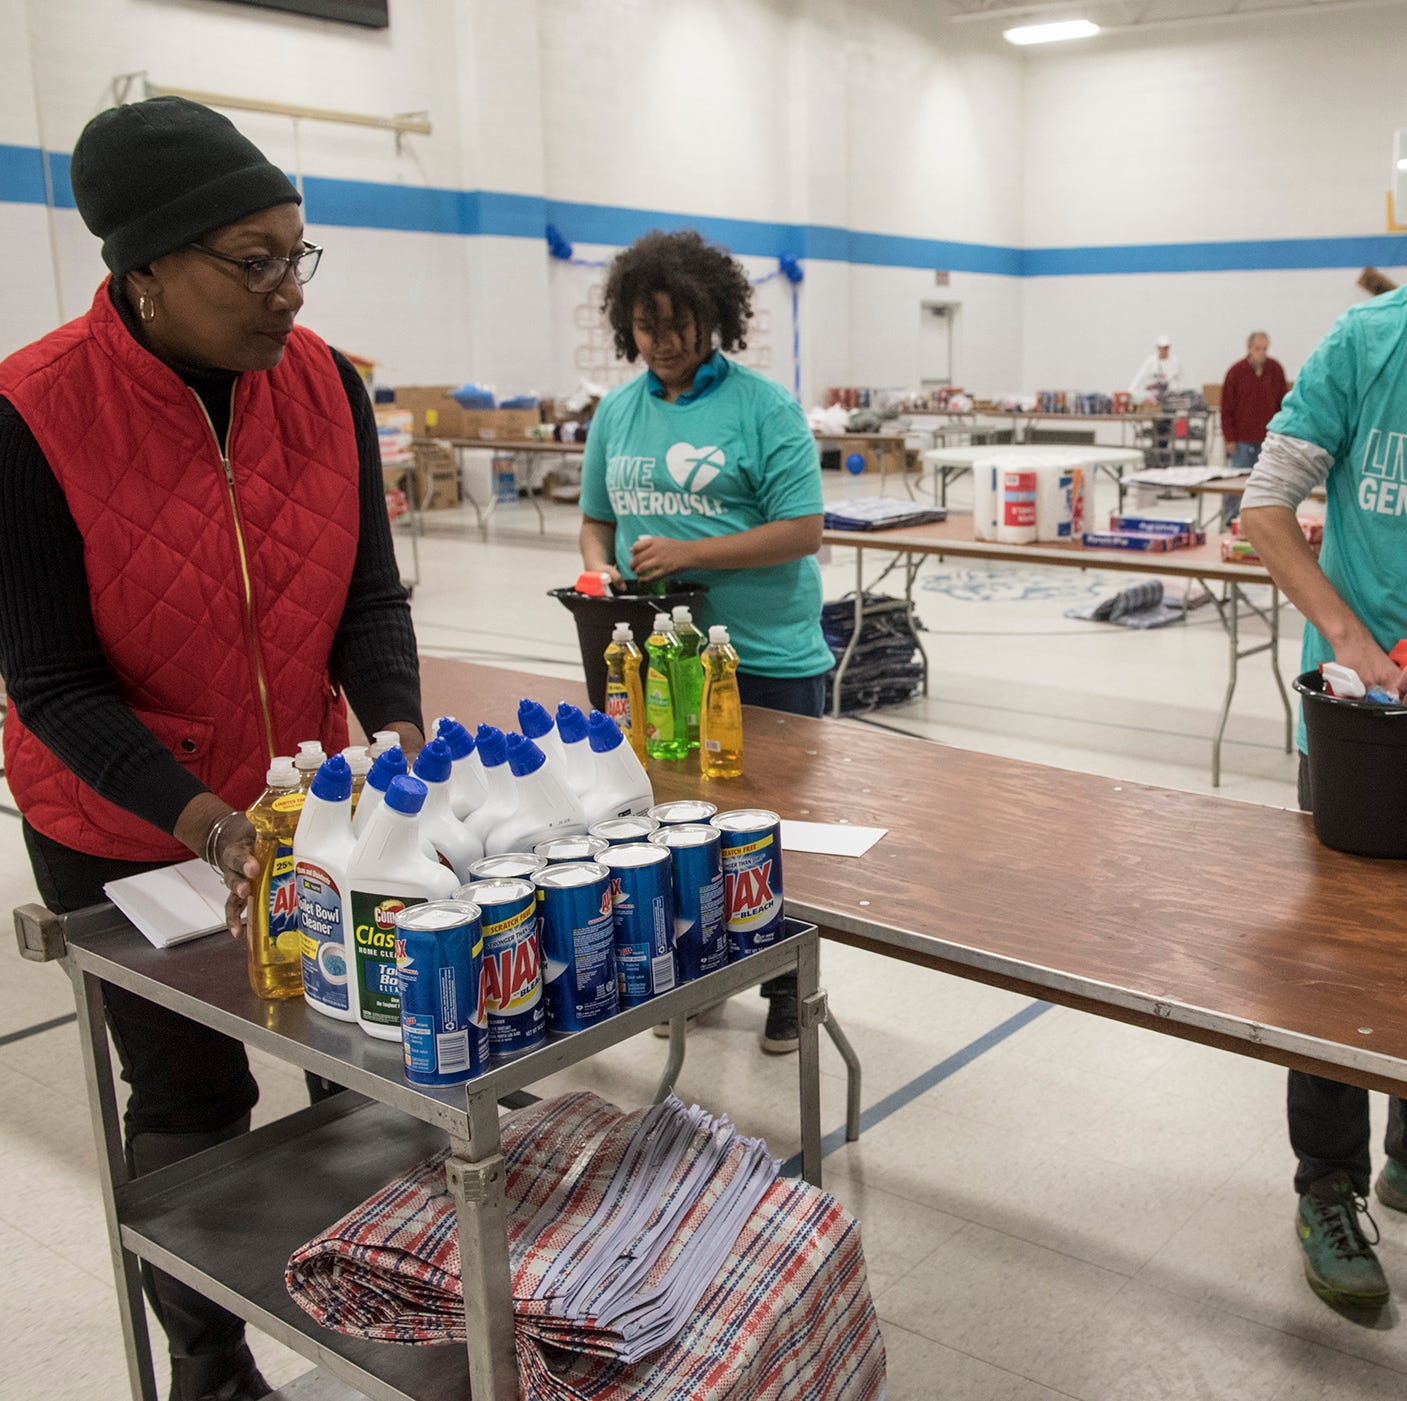 'It's just some small way to say thank you:' students pack care packages for Detroit vets